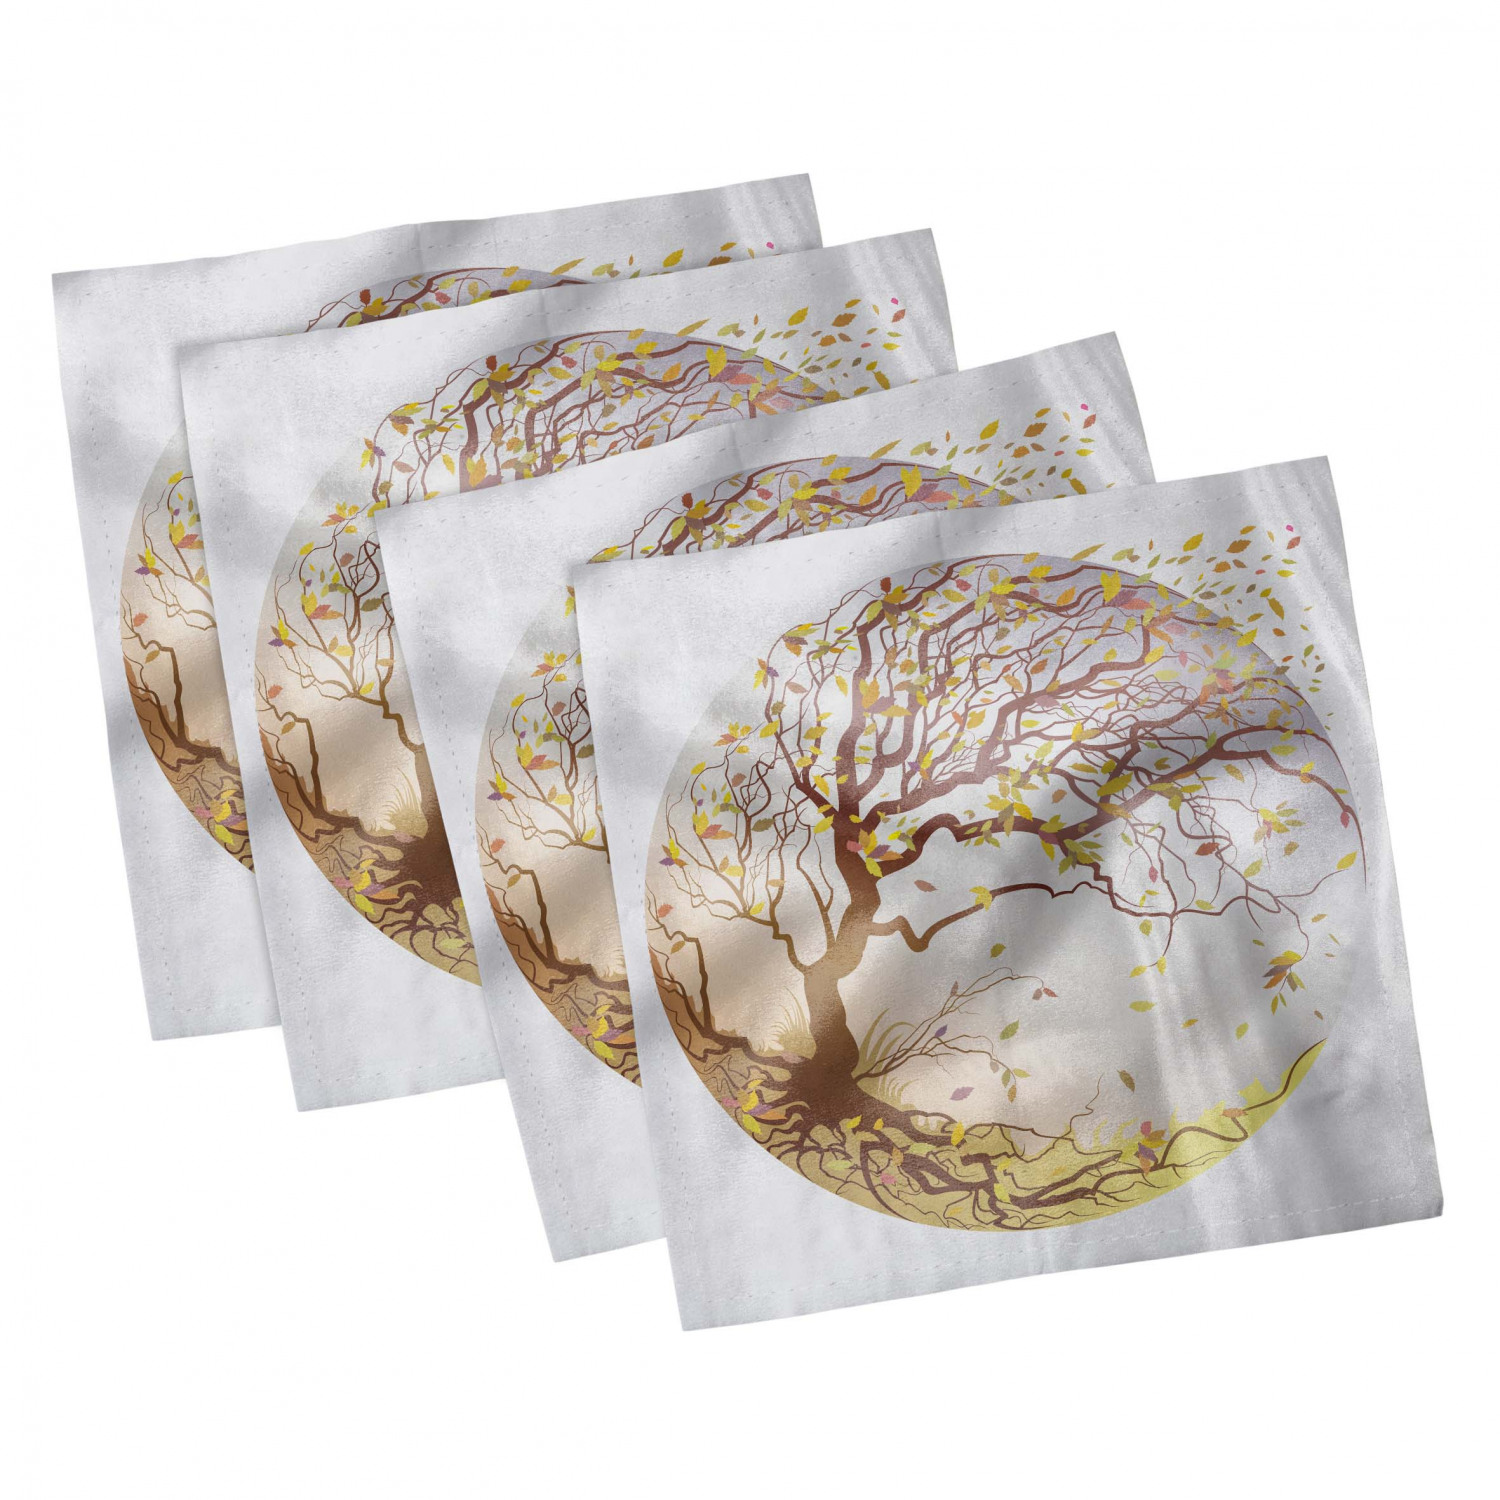 thumbnail 109 - Ambesonne-Autumn-Fall-Decorative-Satin-Napkins-Set-of-4-Party-Dinner-Fabric